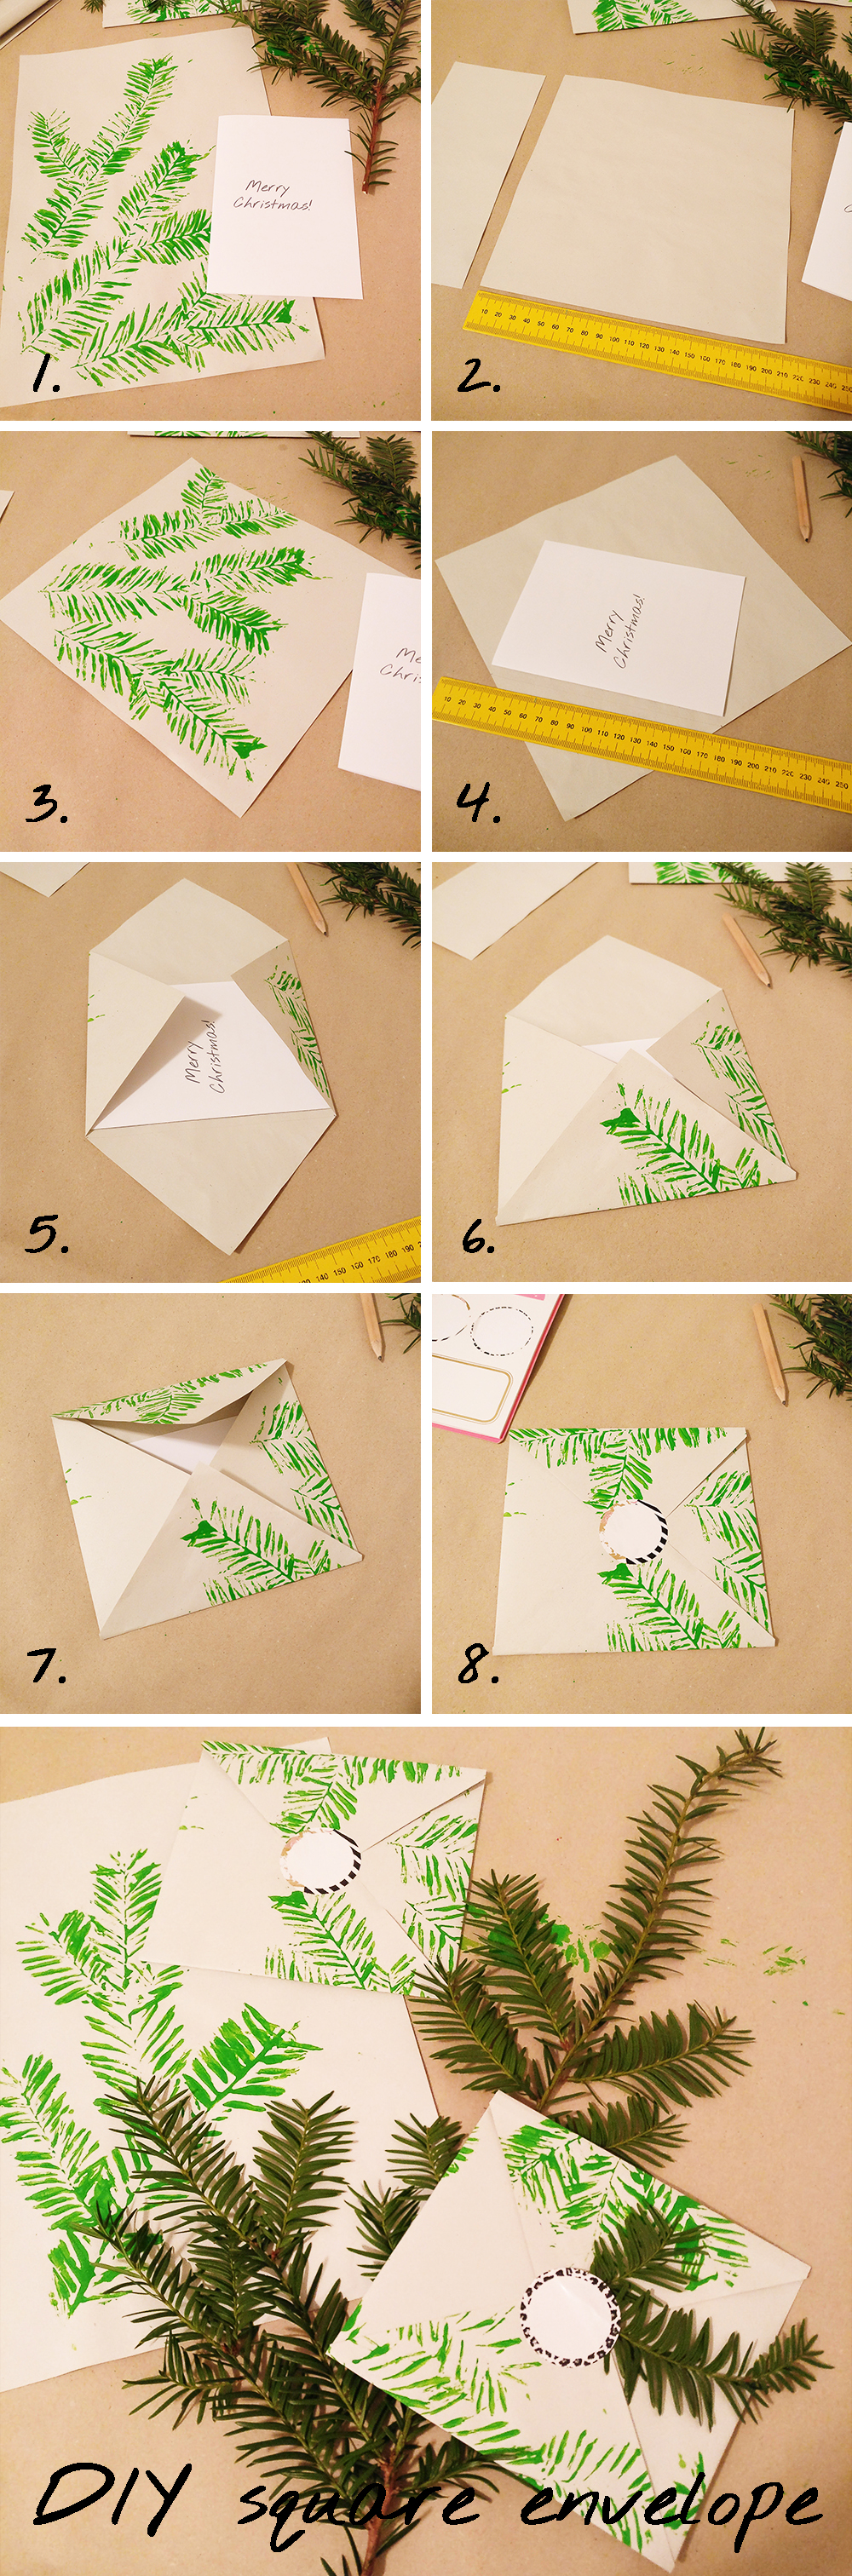 DIY Origami square envelope | Aliz's Wonderland